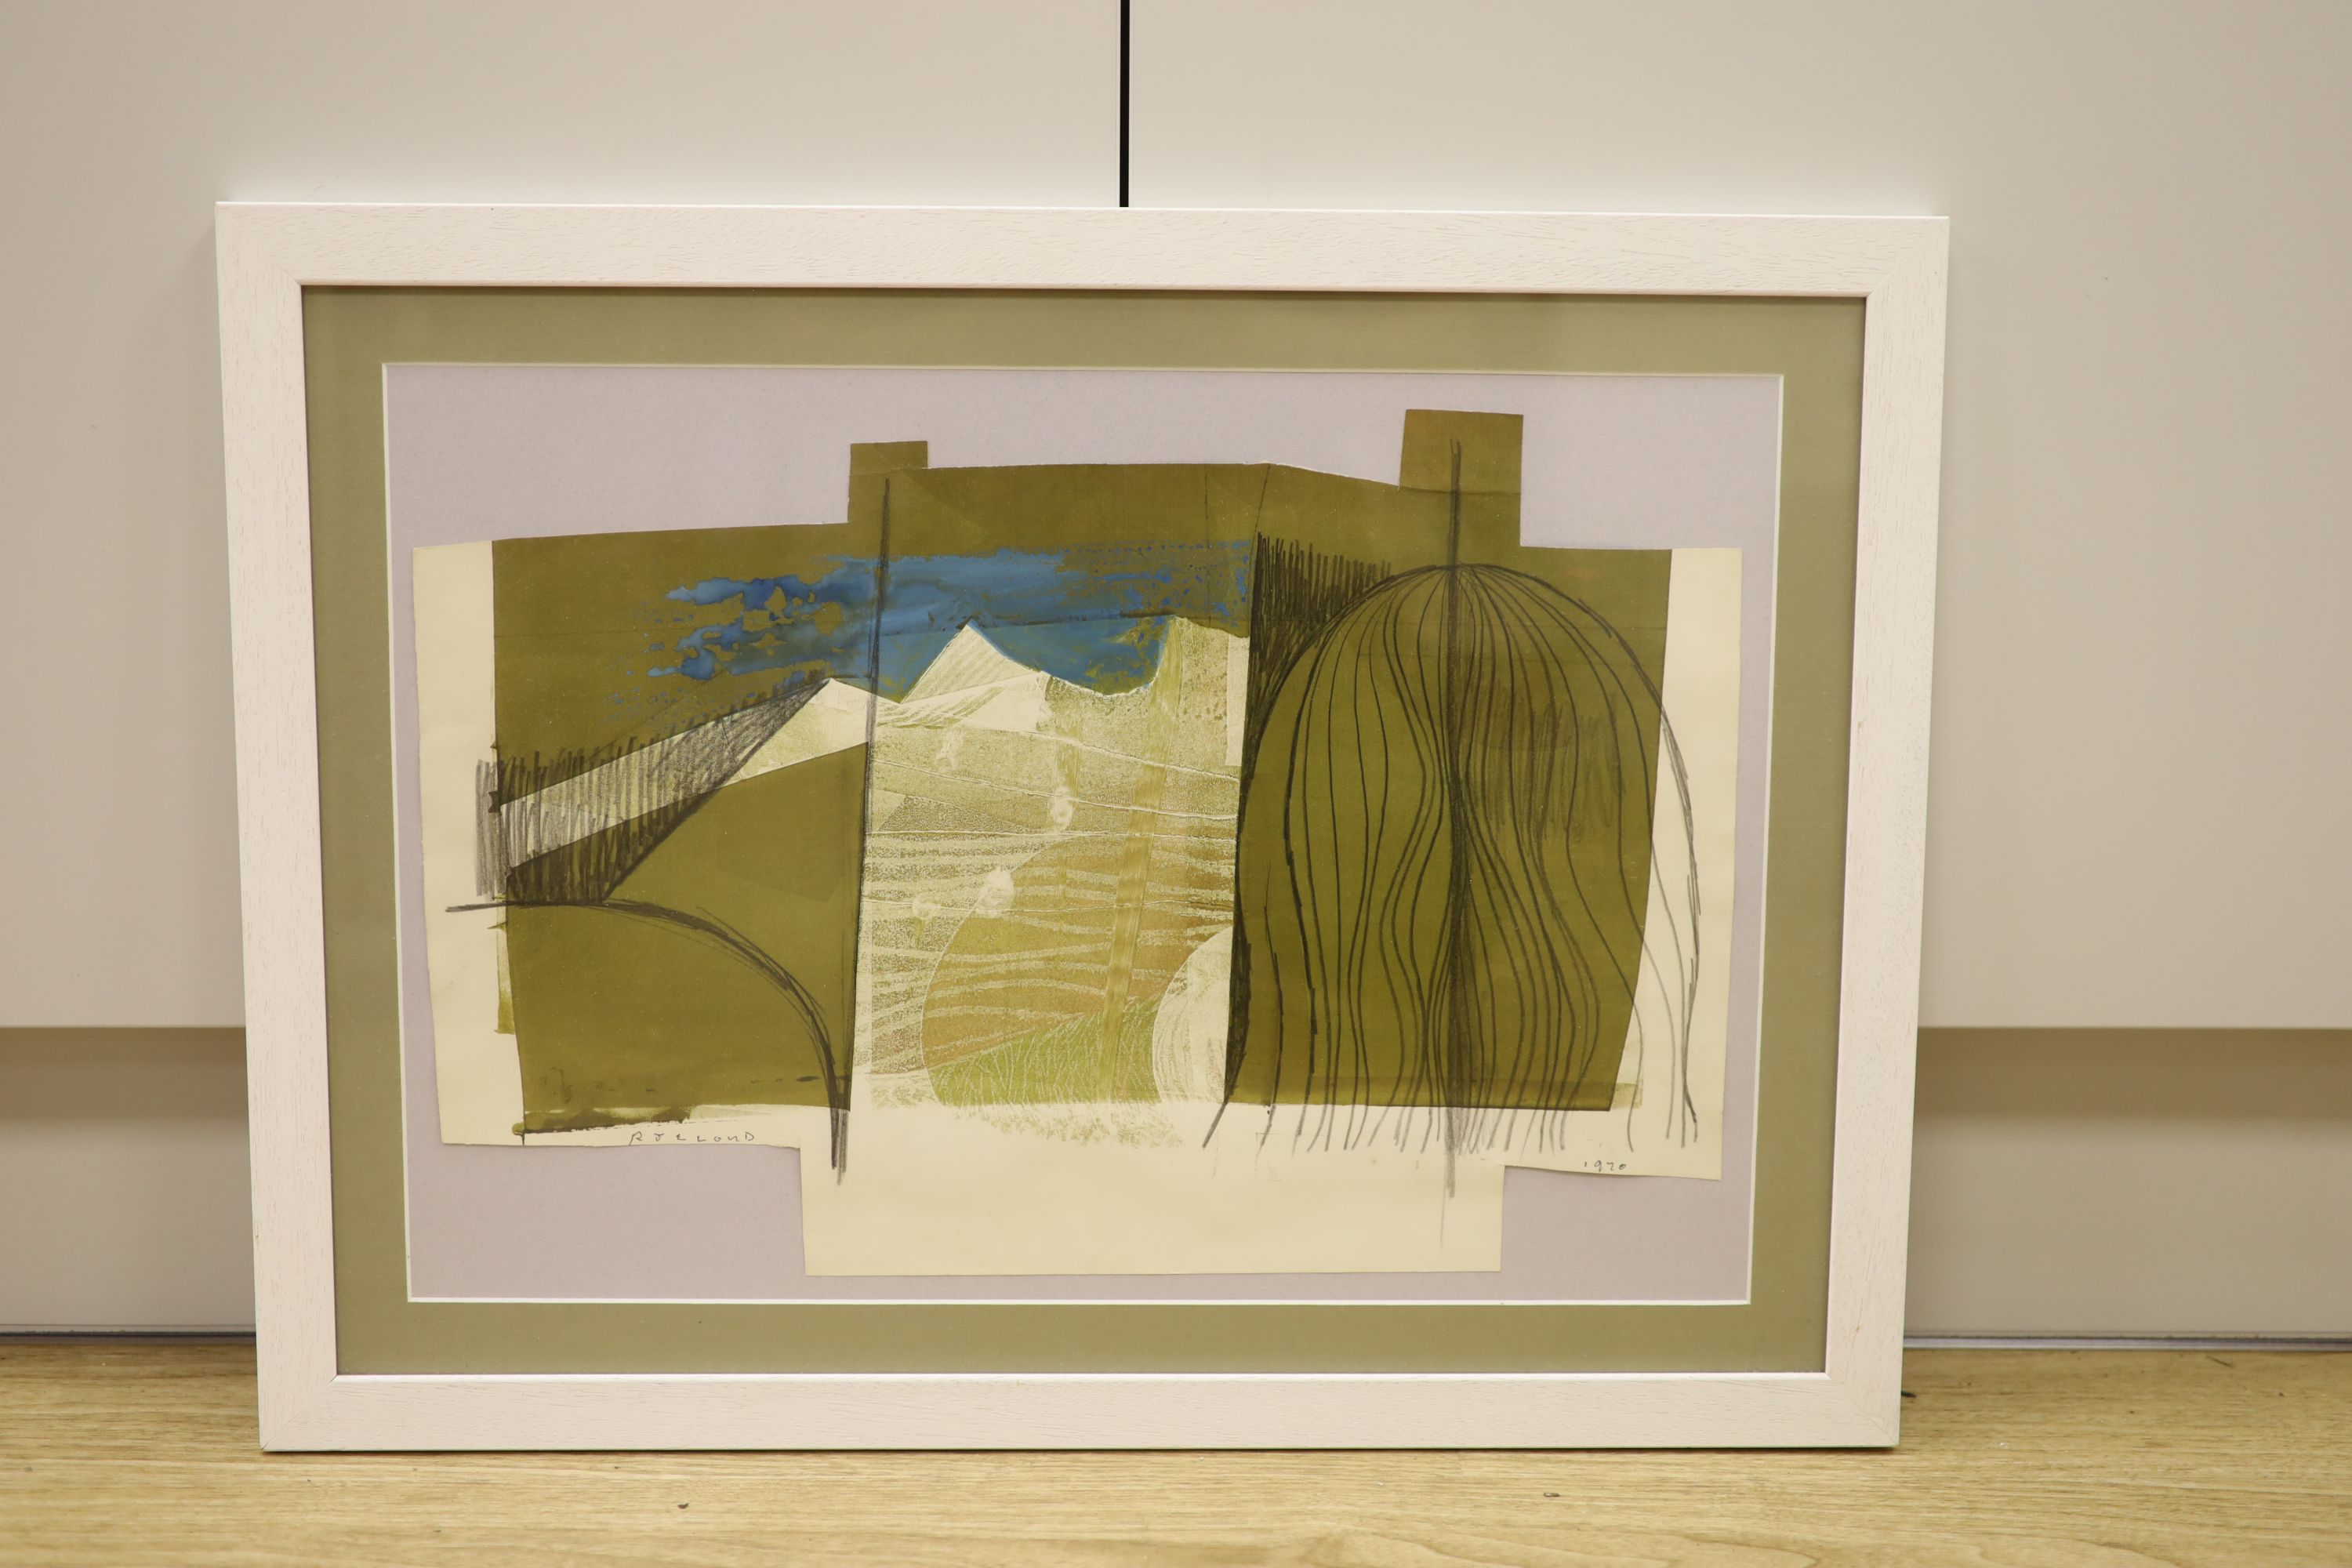 R. J. Lloyd, mixed media, Abstract landscape, signed and dated 1970, 35 x 51cm - Image 2 of 3